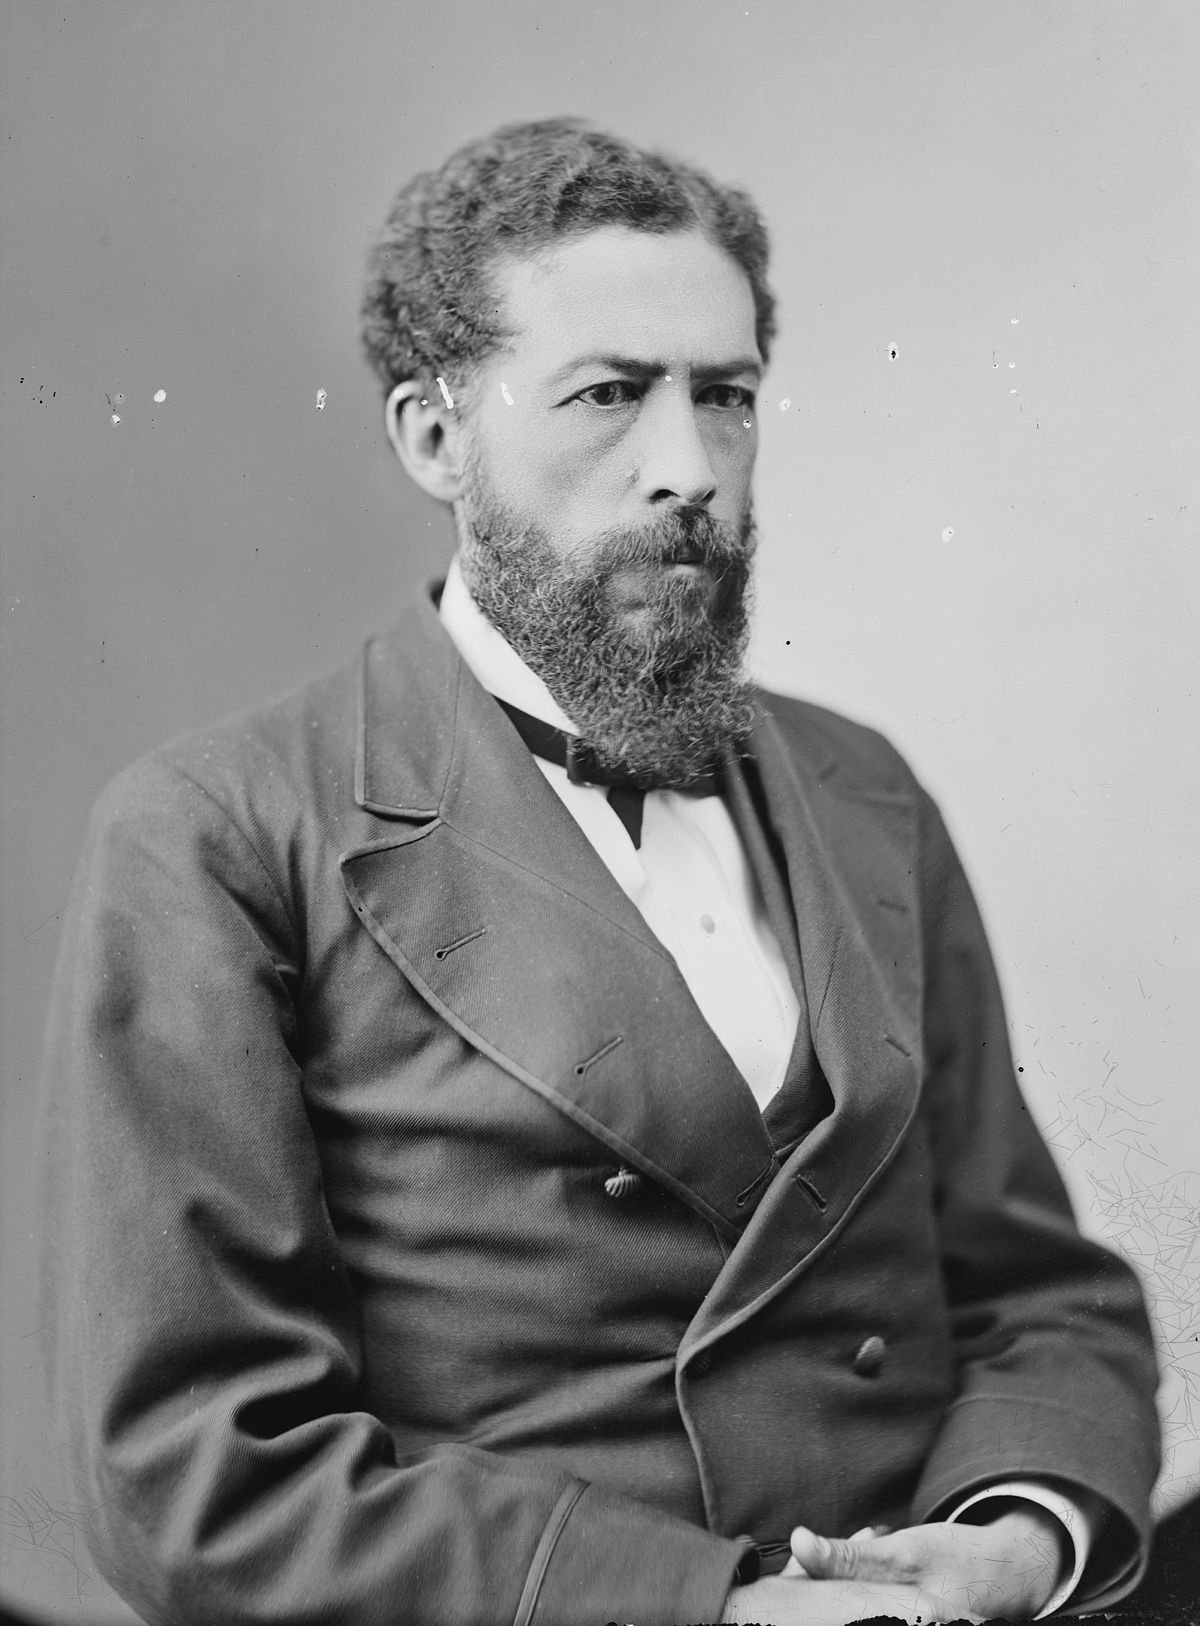 Lawyer and Statesman John Mercer Langston